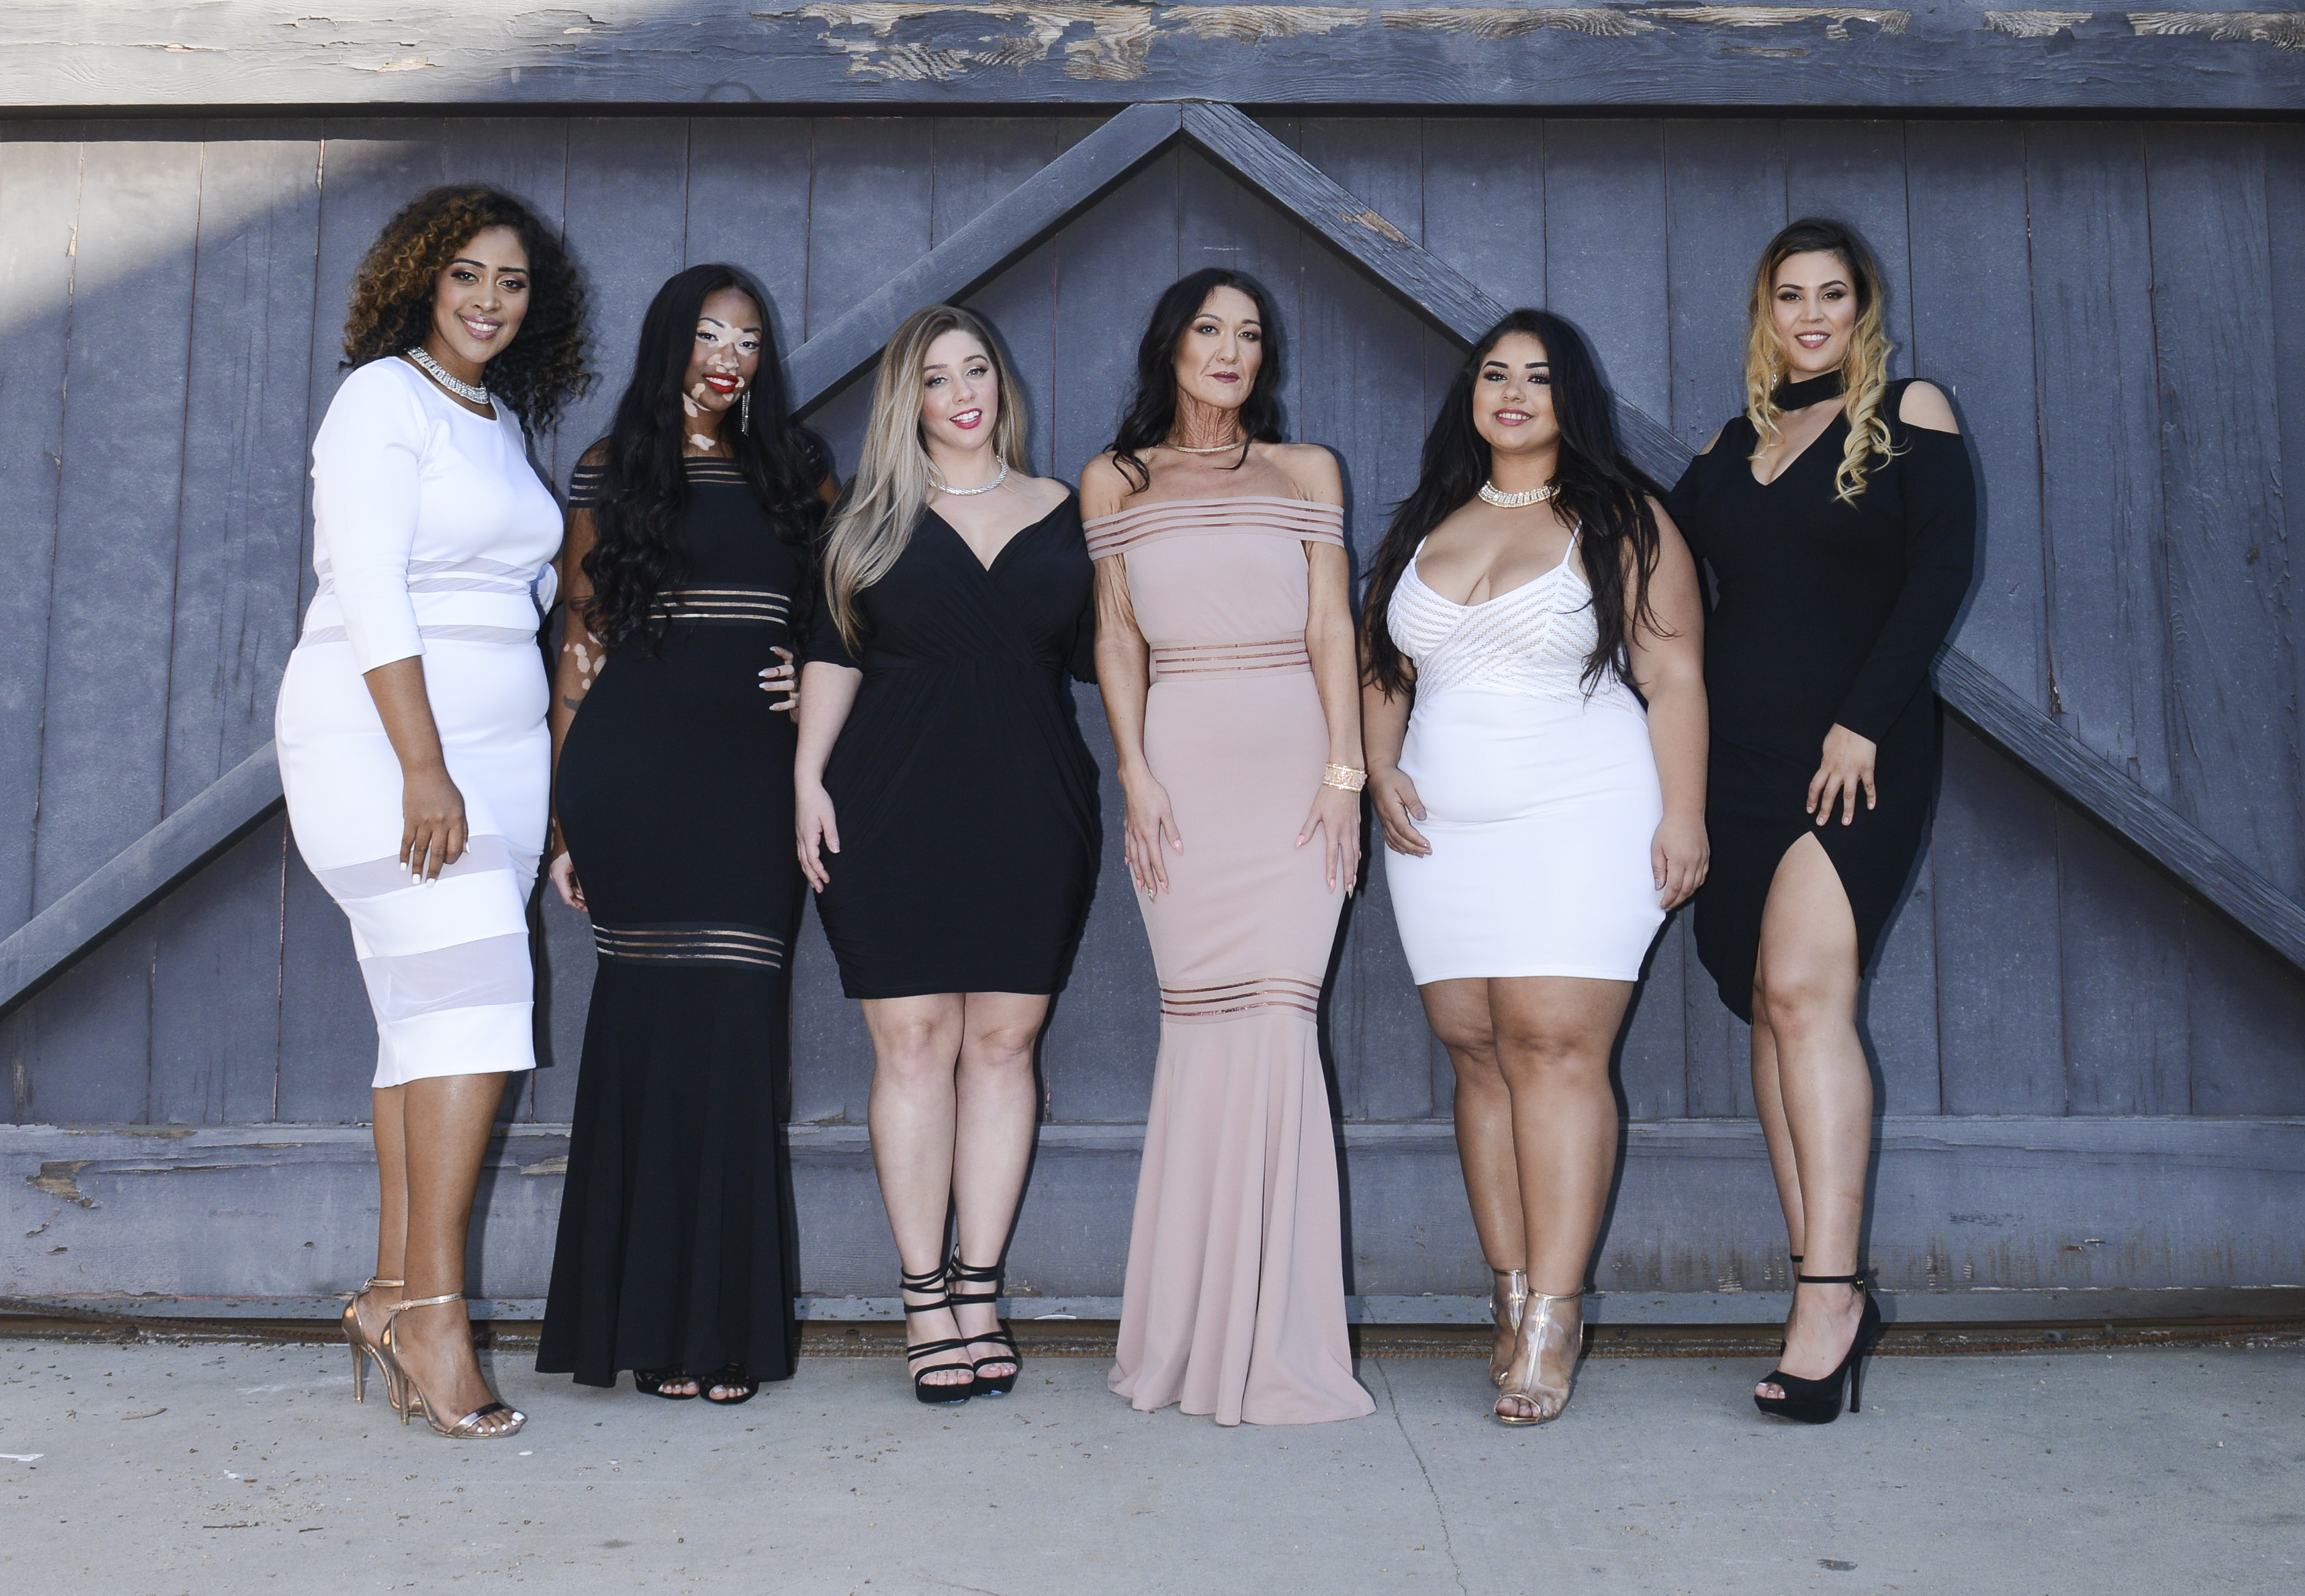 Xehar Is Launching Body Positive Mentor Diana Sirokai New #AconfidentYou Collection with Exclusive Diversity Campaign